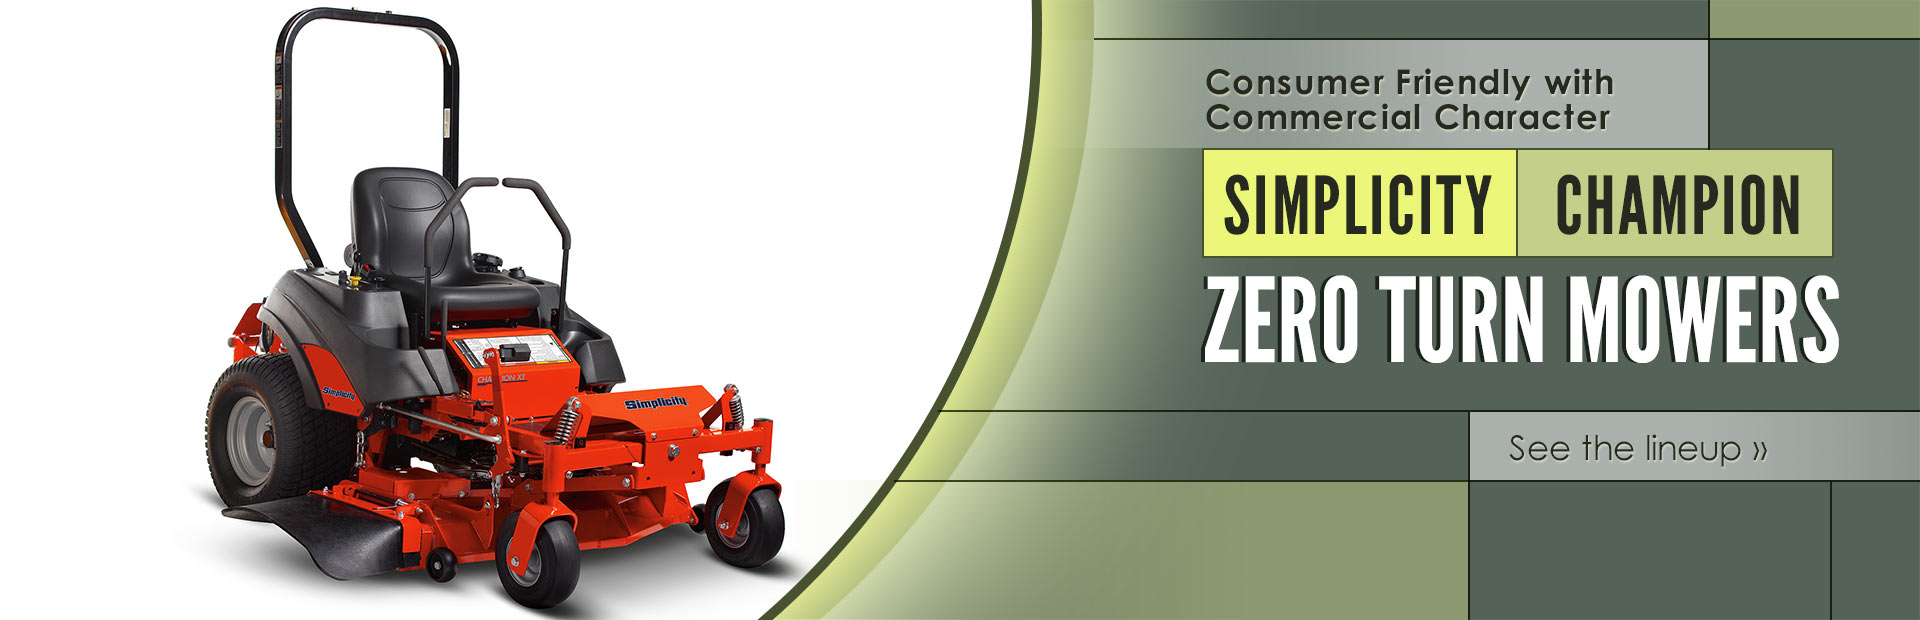 Simplicity Champion zero turn mowers are consumer friendly with commercial character! Click here to